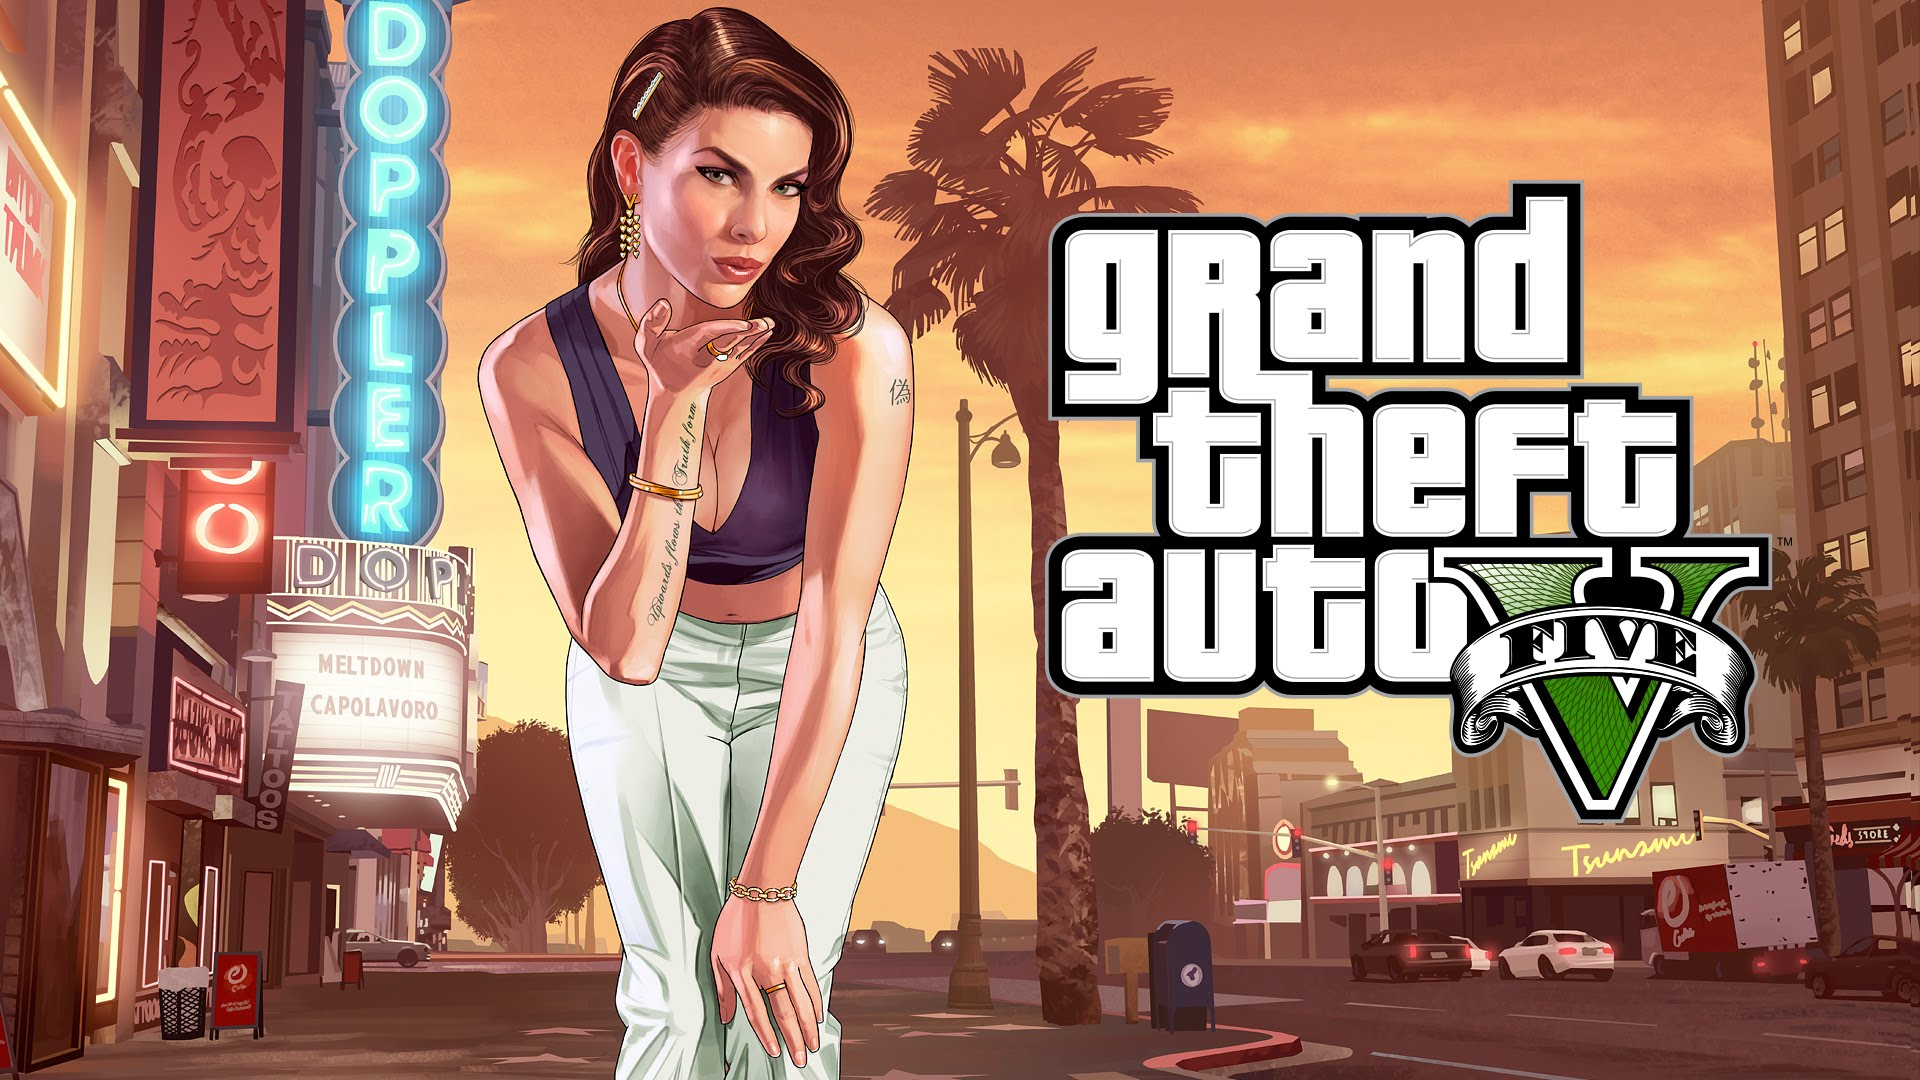 Grand theft auto V 5 (STEAM GIFT / ROW / REGION FREE)